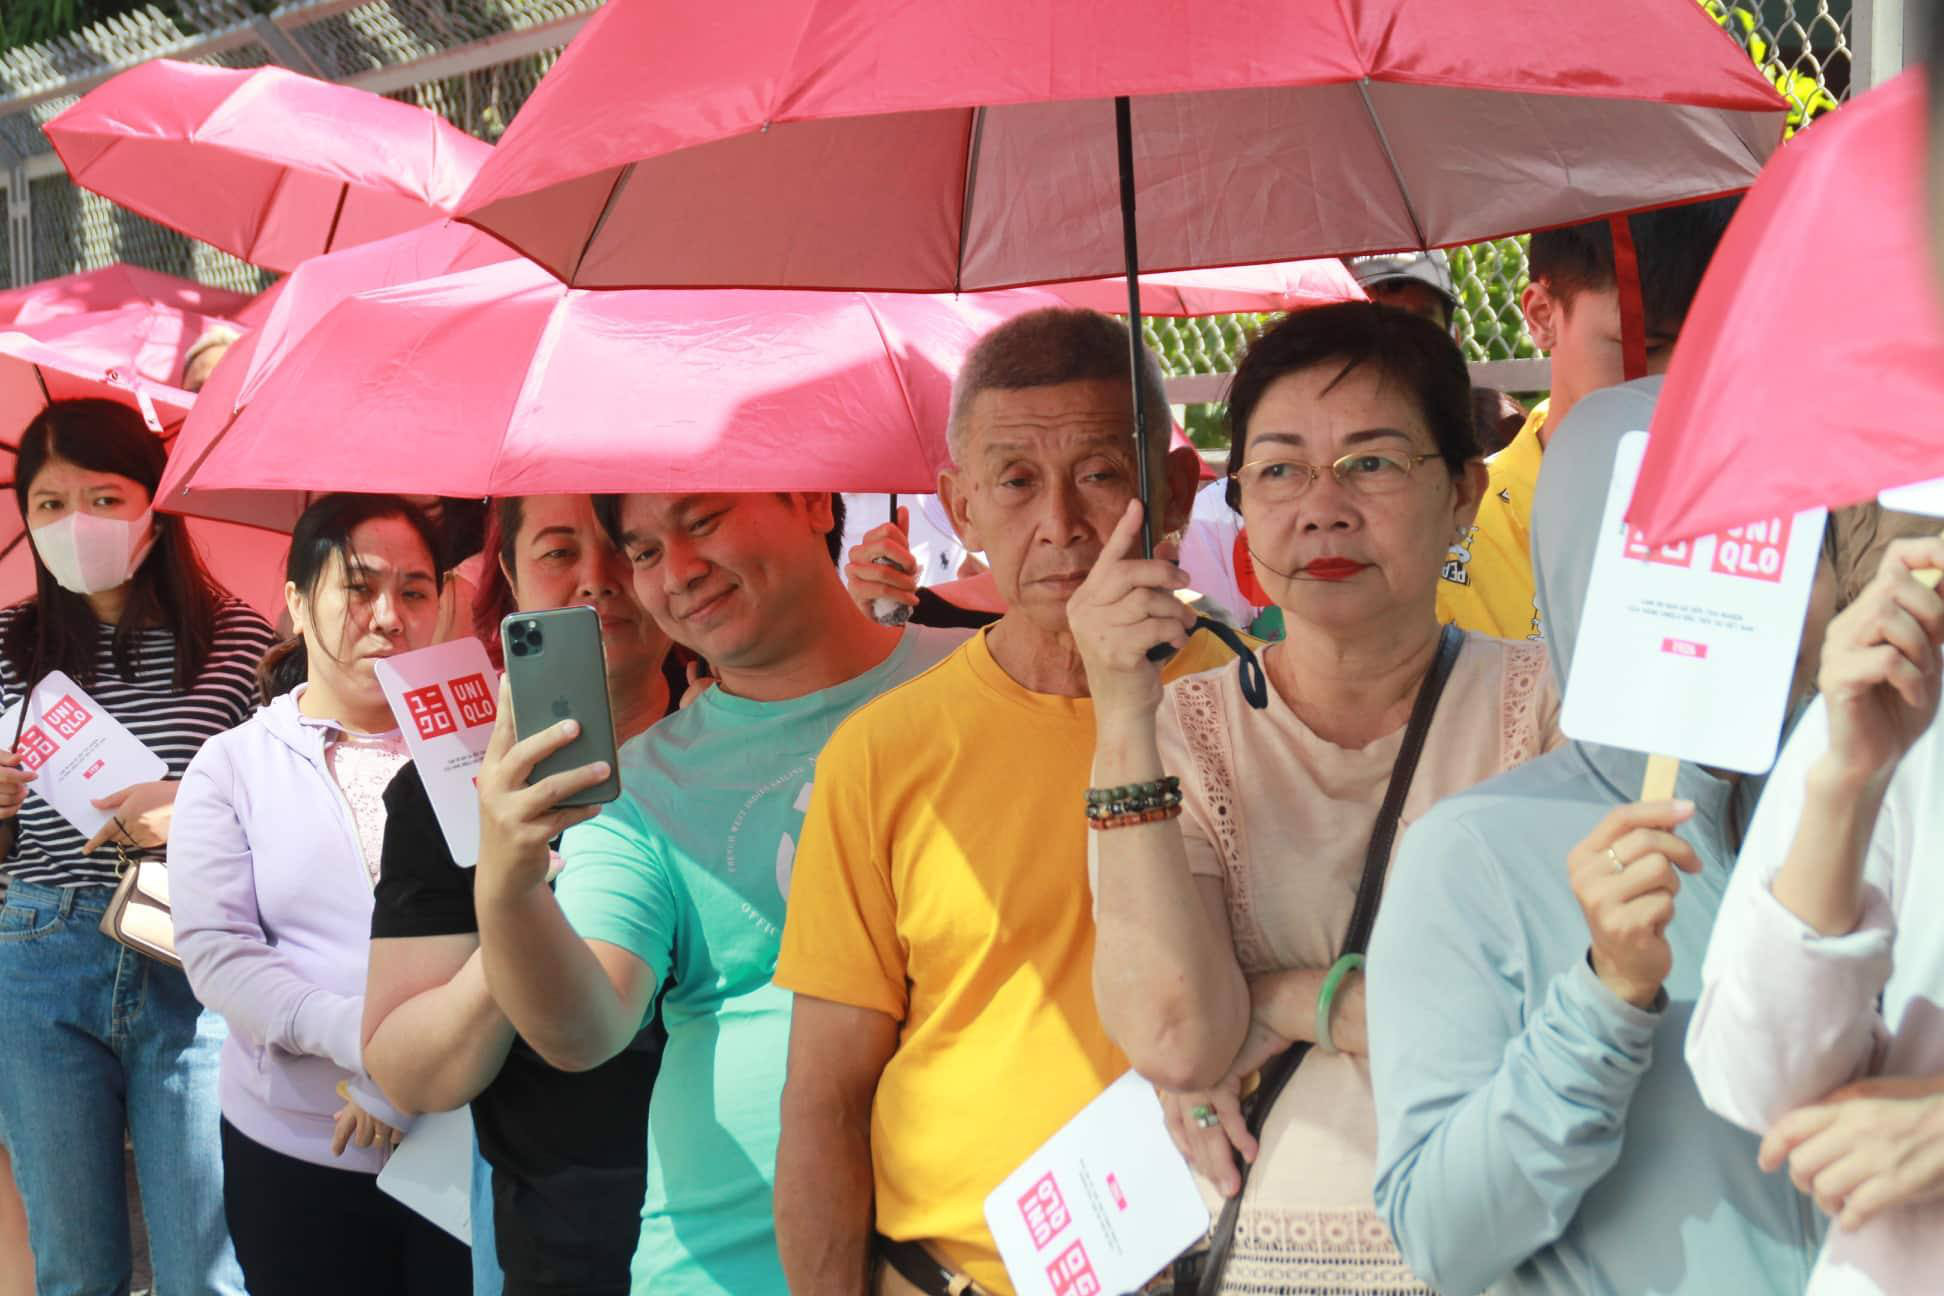 Many middle-aged customers are spotted among the crowd. Photo: Nguyen Tri / Tuoi Tre